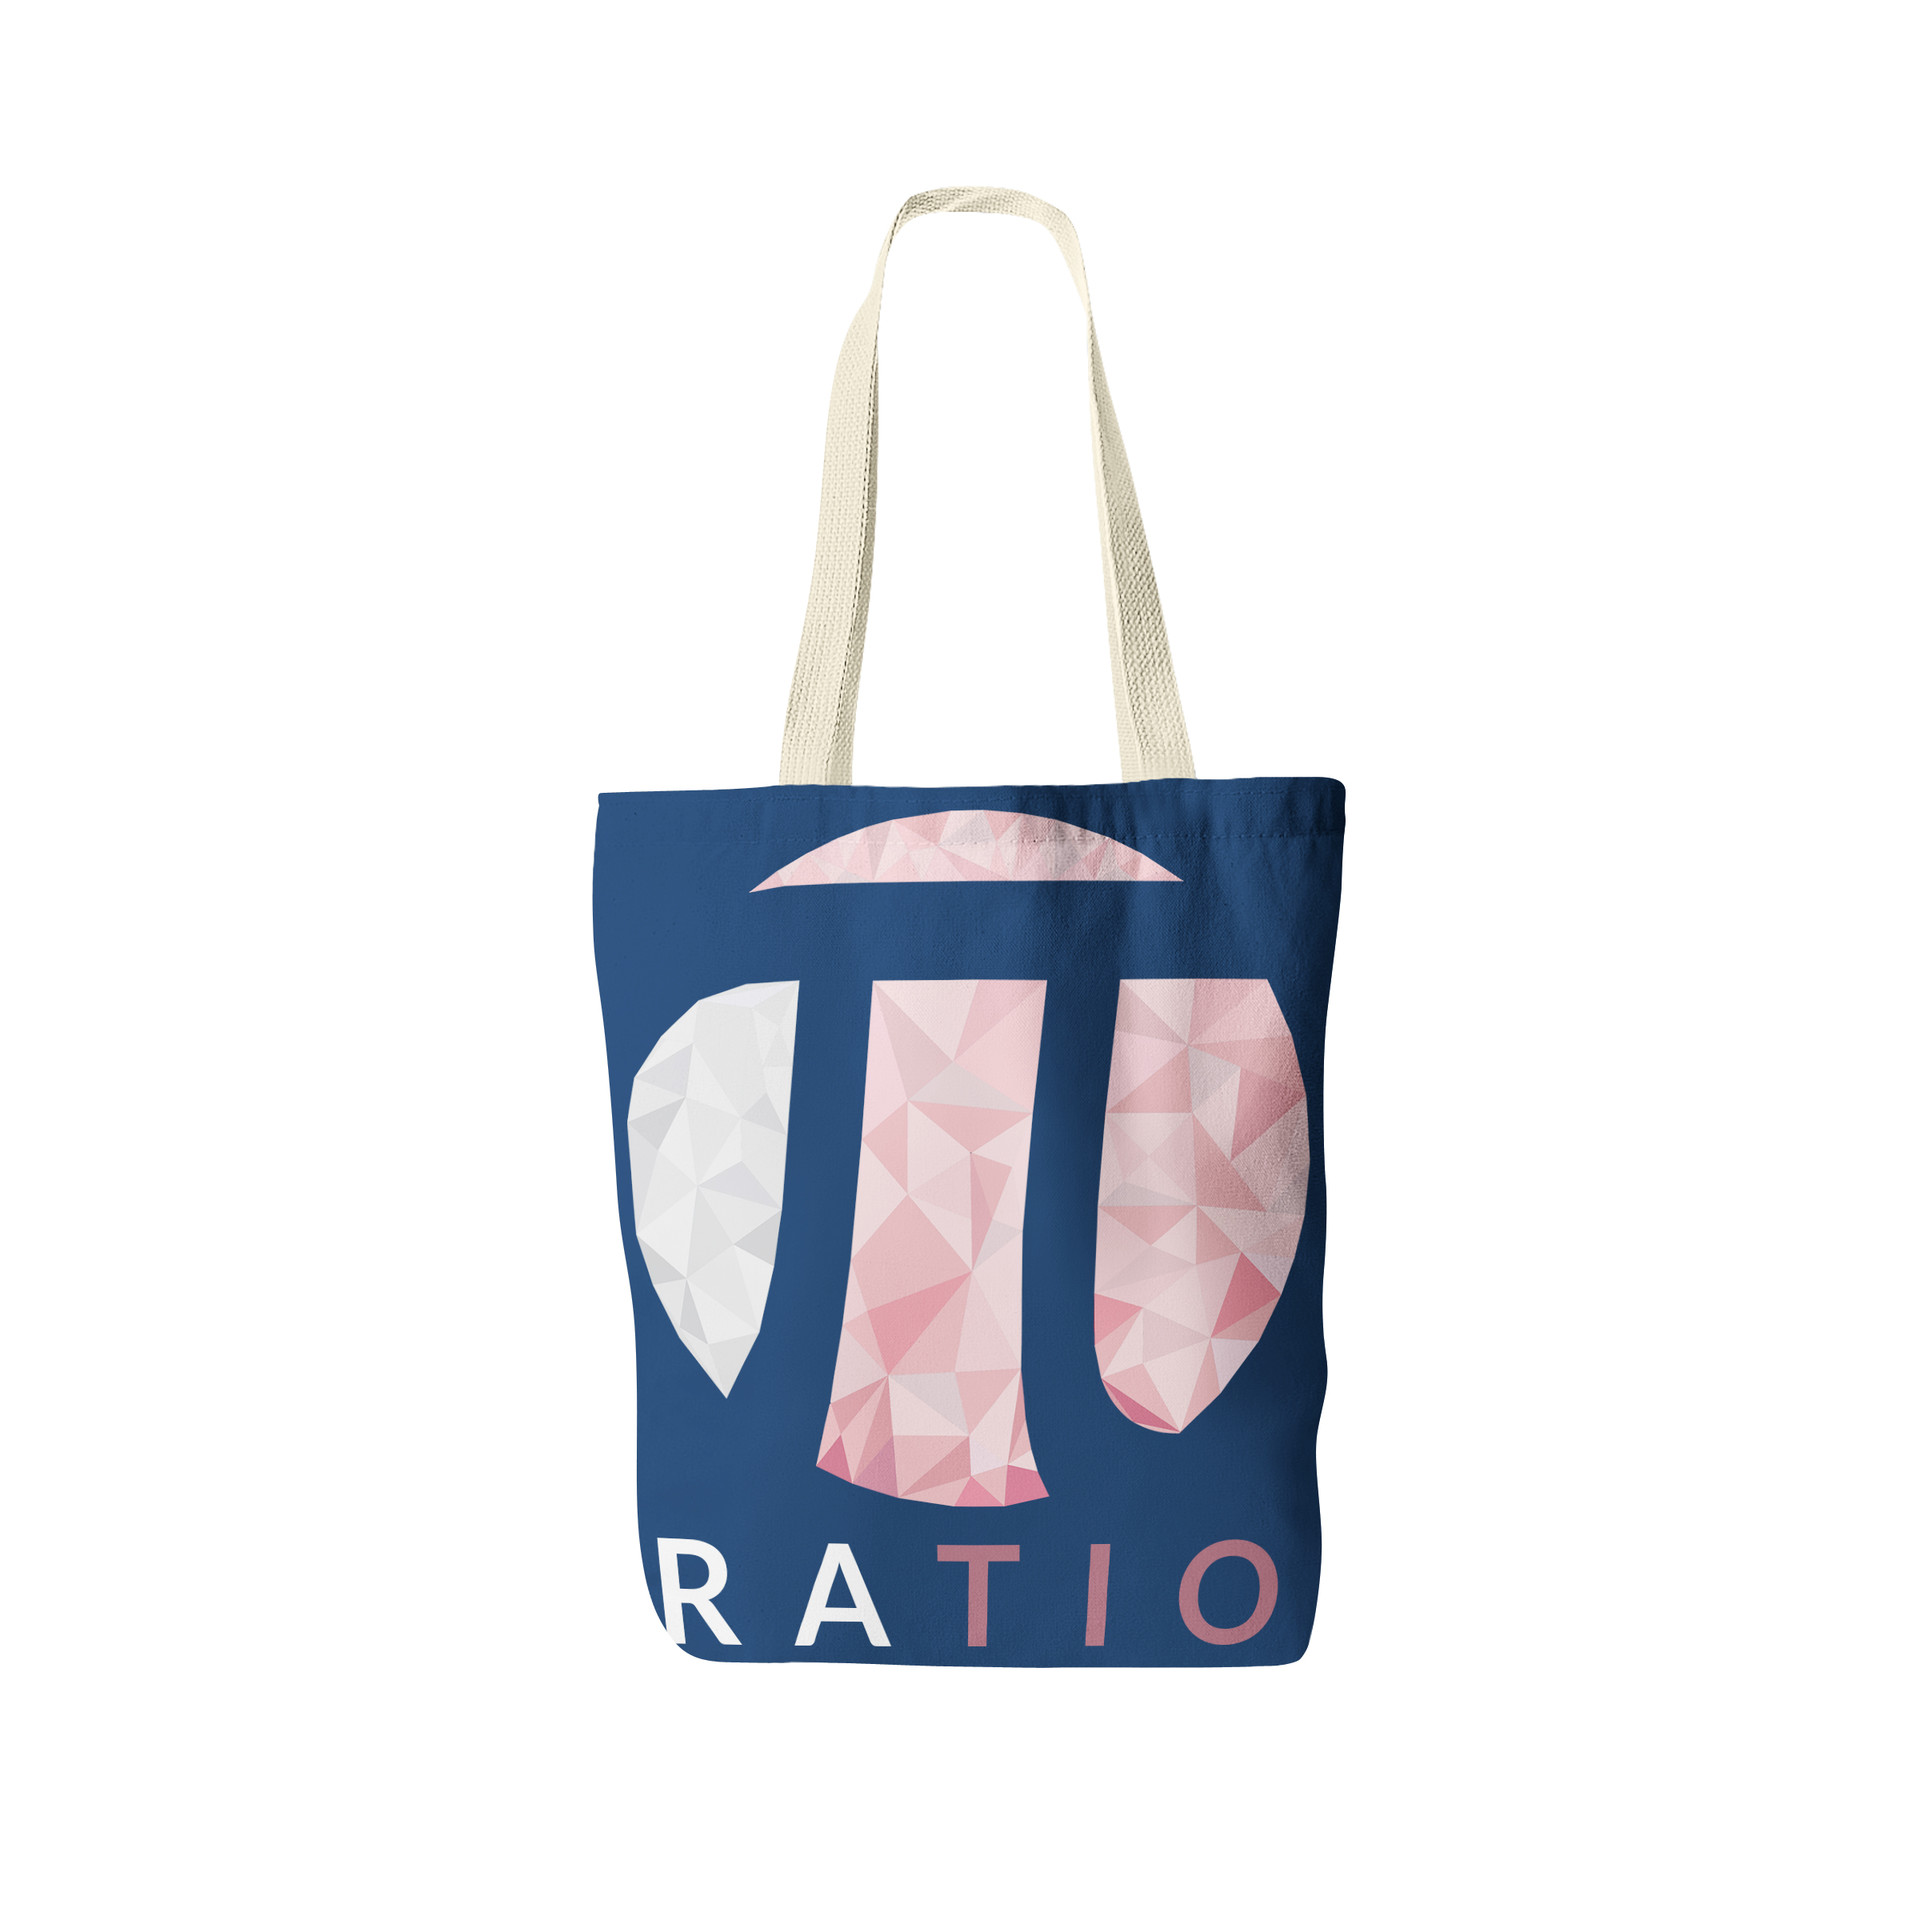 Jerry ubah ratio tote bag front view 3